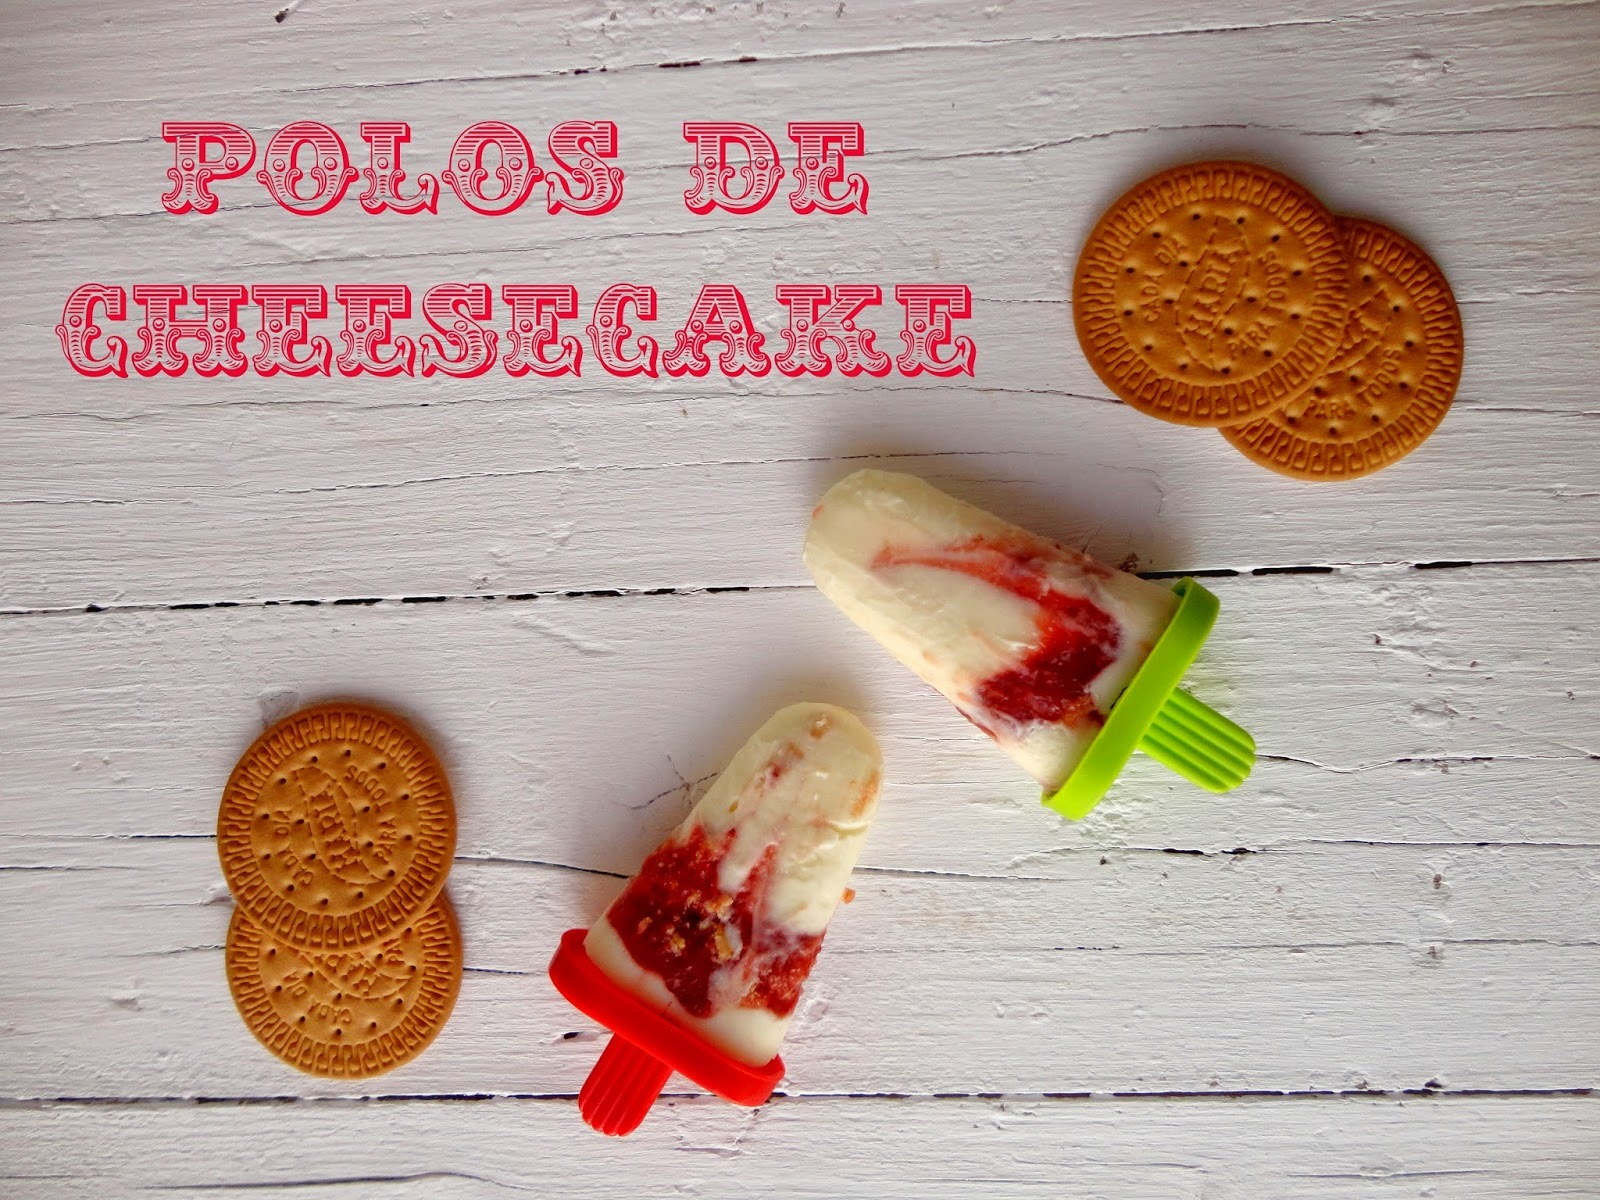 Polos de Cheesecake (Cheesecake popsicles)